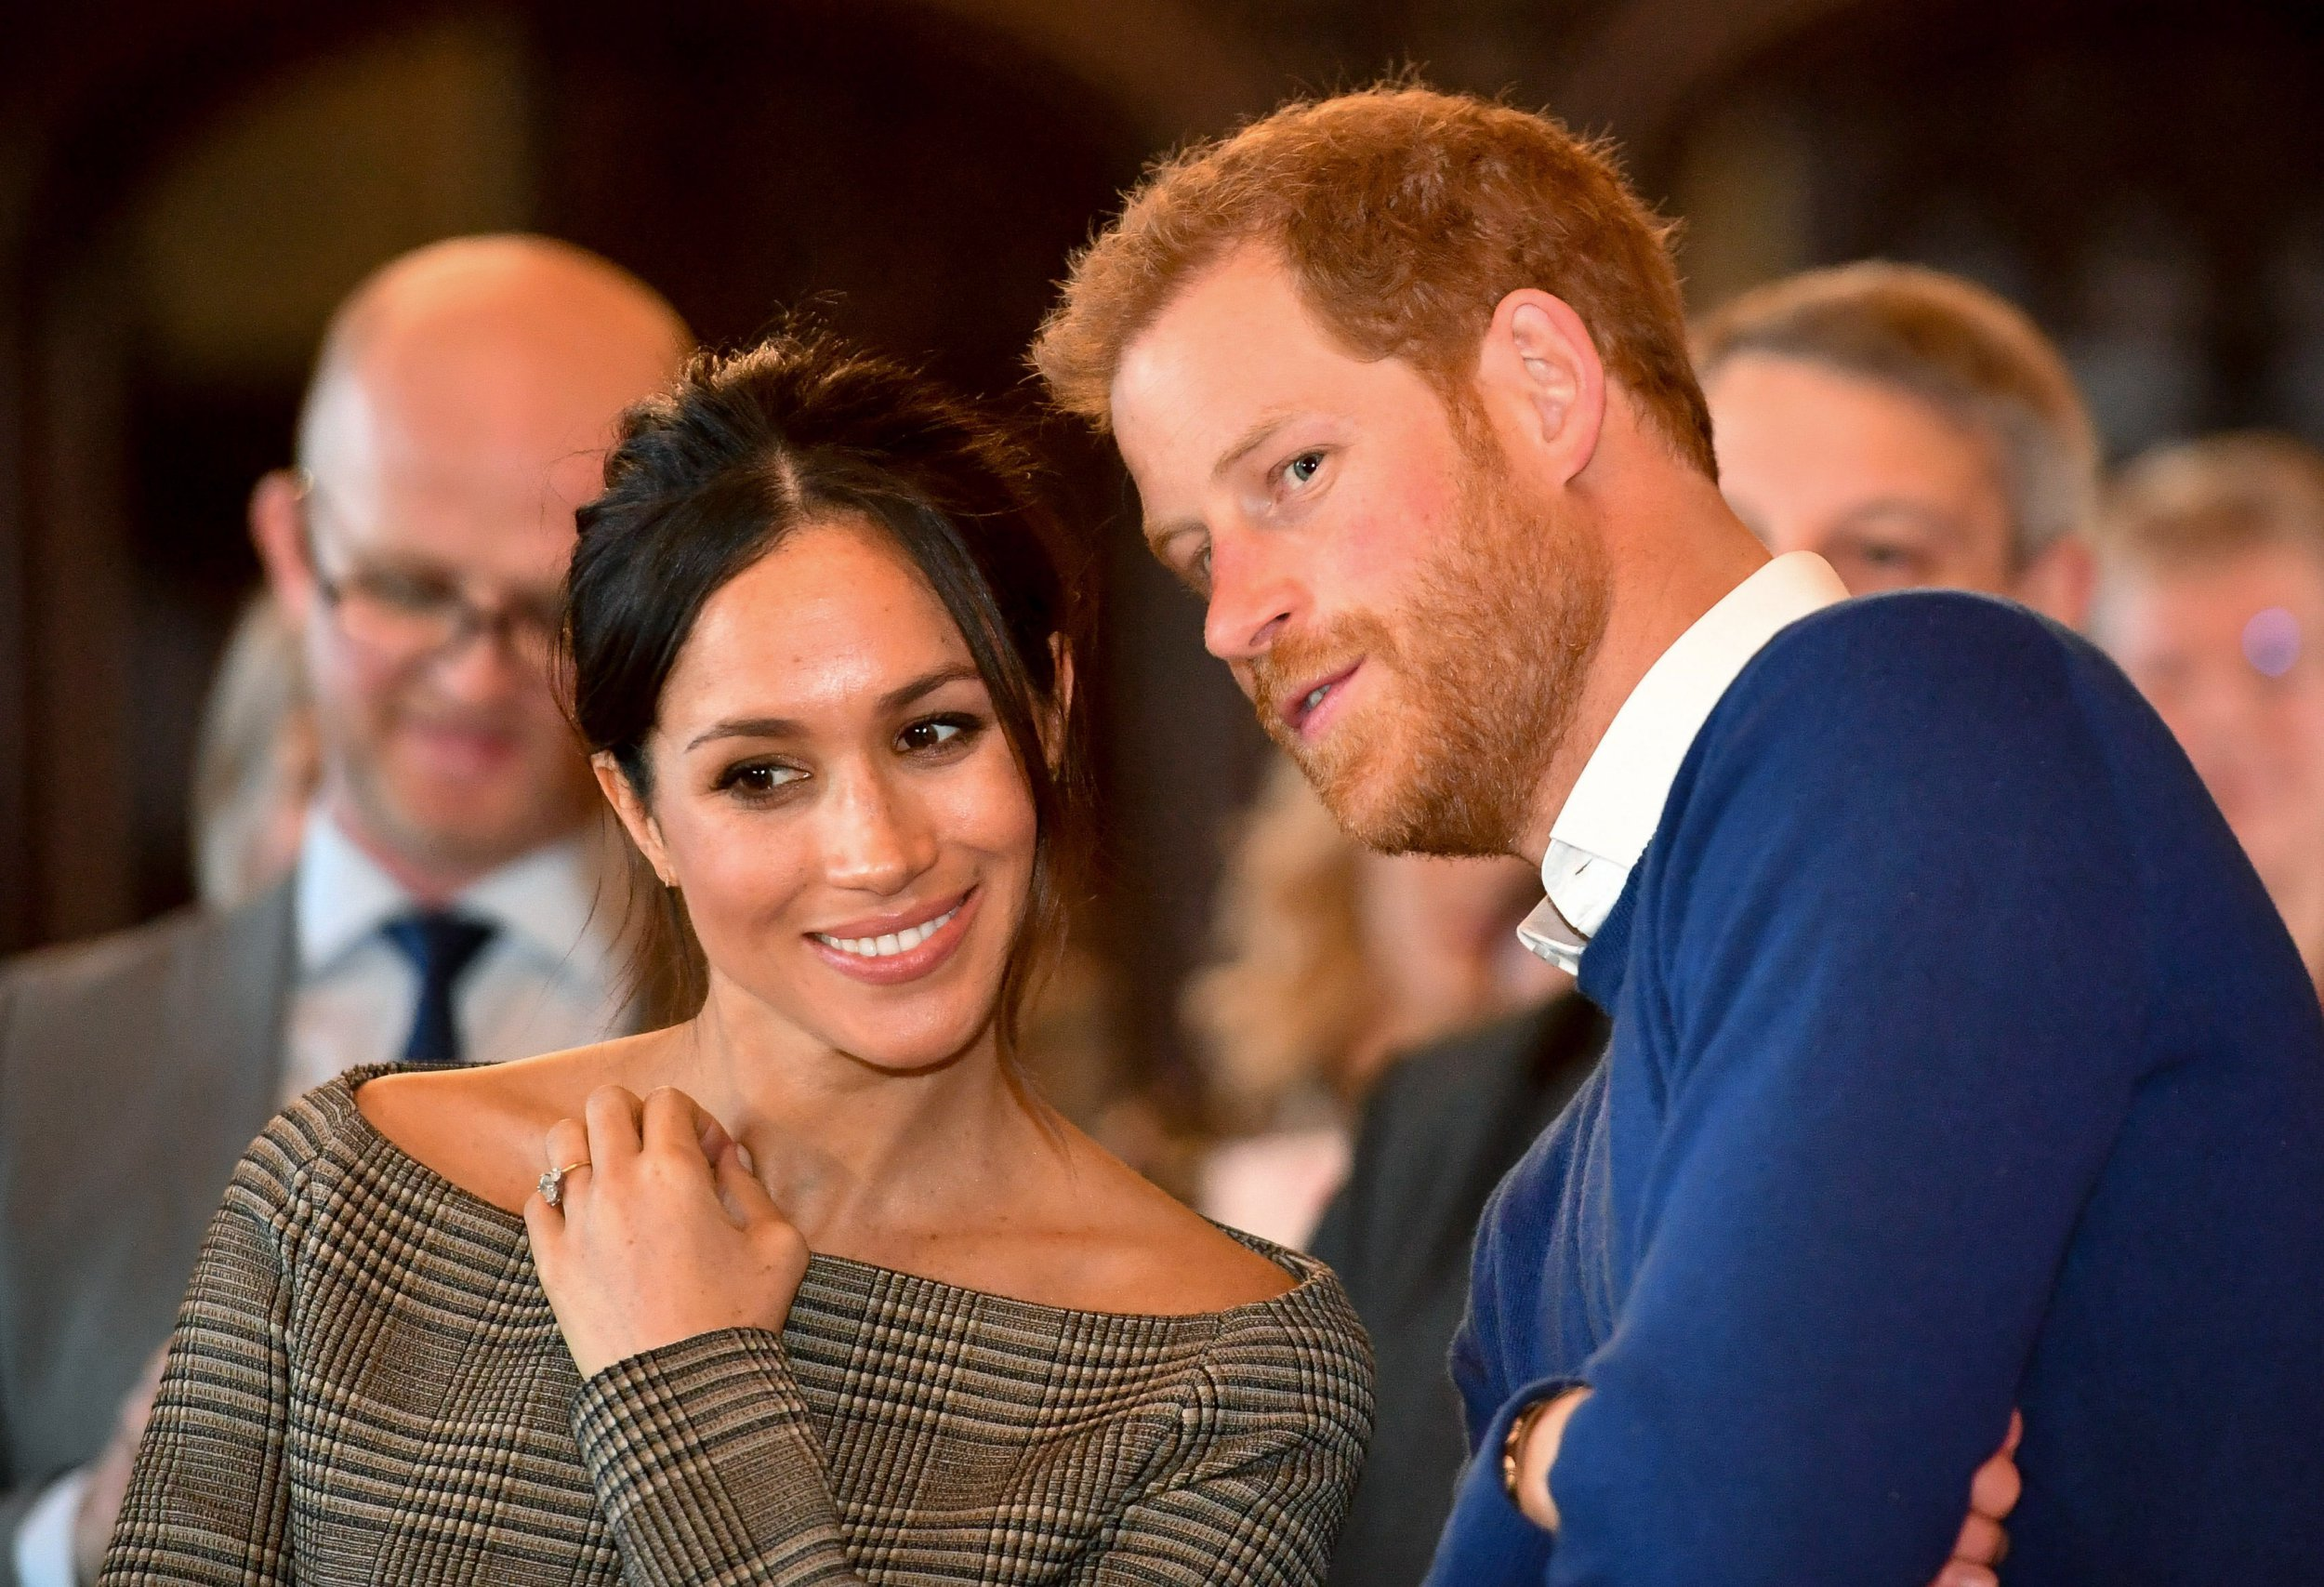 CARDIFF, WALES - JANUARY 18: Prince Harry whispers to Meghan Markle as they watch a dance performance by Jukebox Collective in the banqueting hall during a visit to Cardiff Castle on January 18, 2018 in Cardiff, Wales. (Photo by Ben Birchall - WPA Pool / Getty Images)